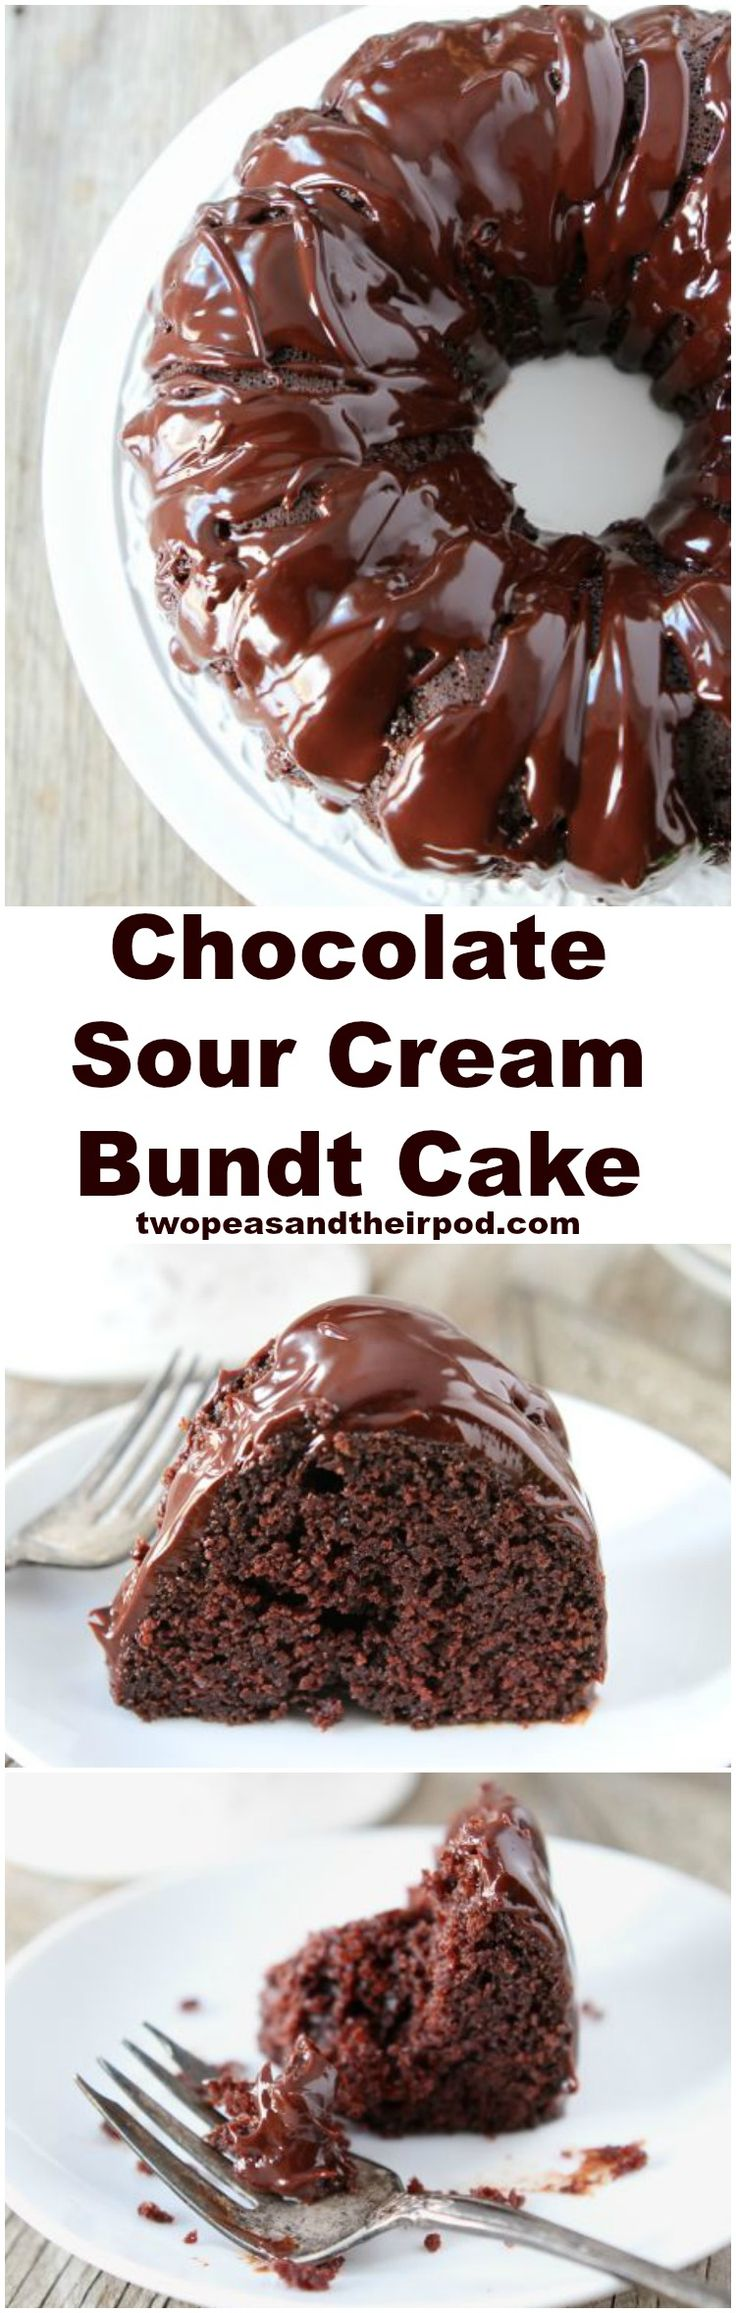 Chocolate Sour Cream Bundt Cake Recipe on twopeasandtheirpod.com The BEST chocolate cake recipe and it's so easy to make! Everyone LOVES this cake!